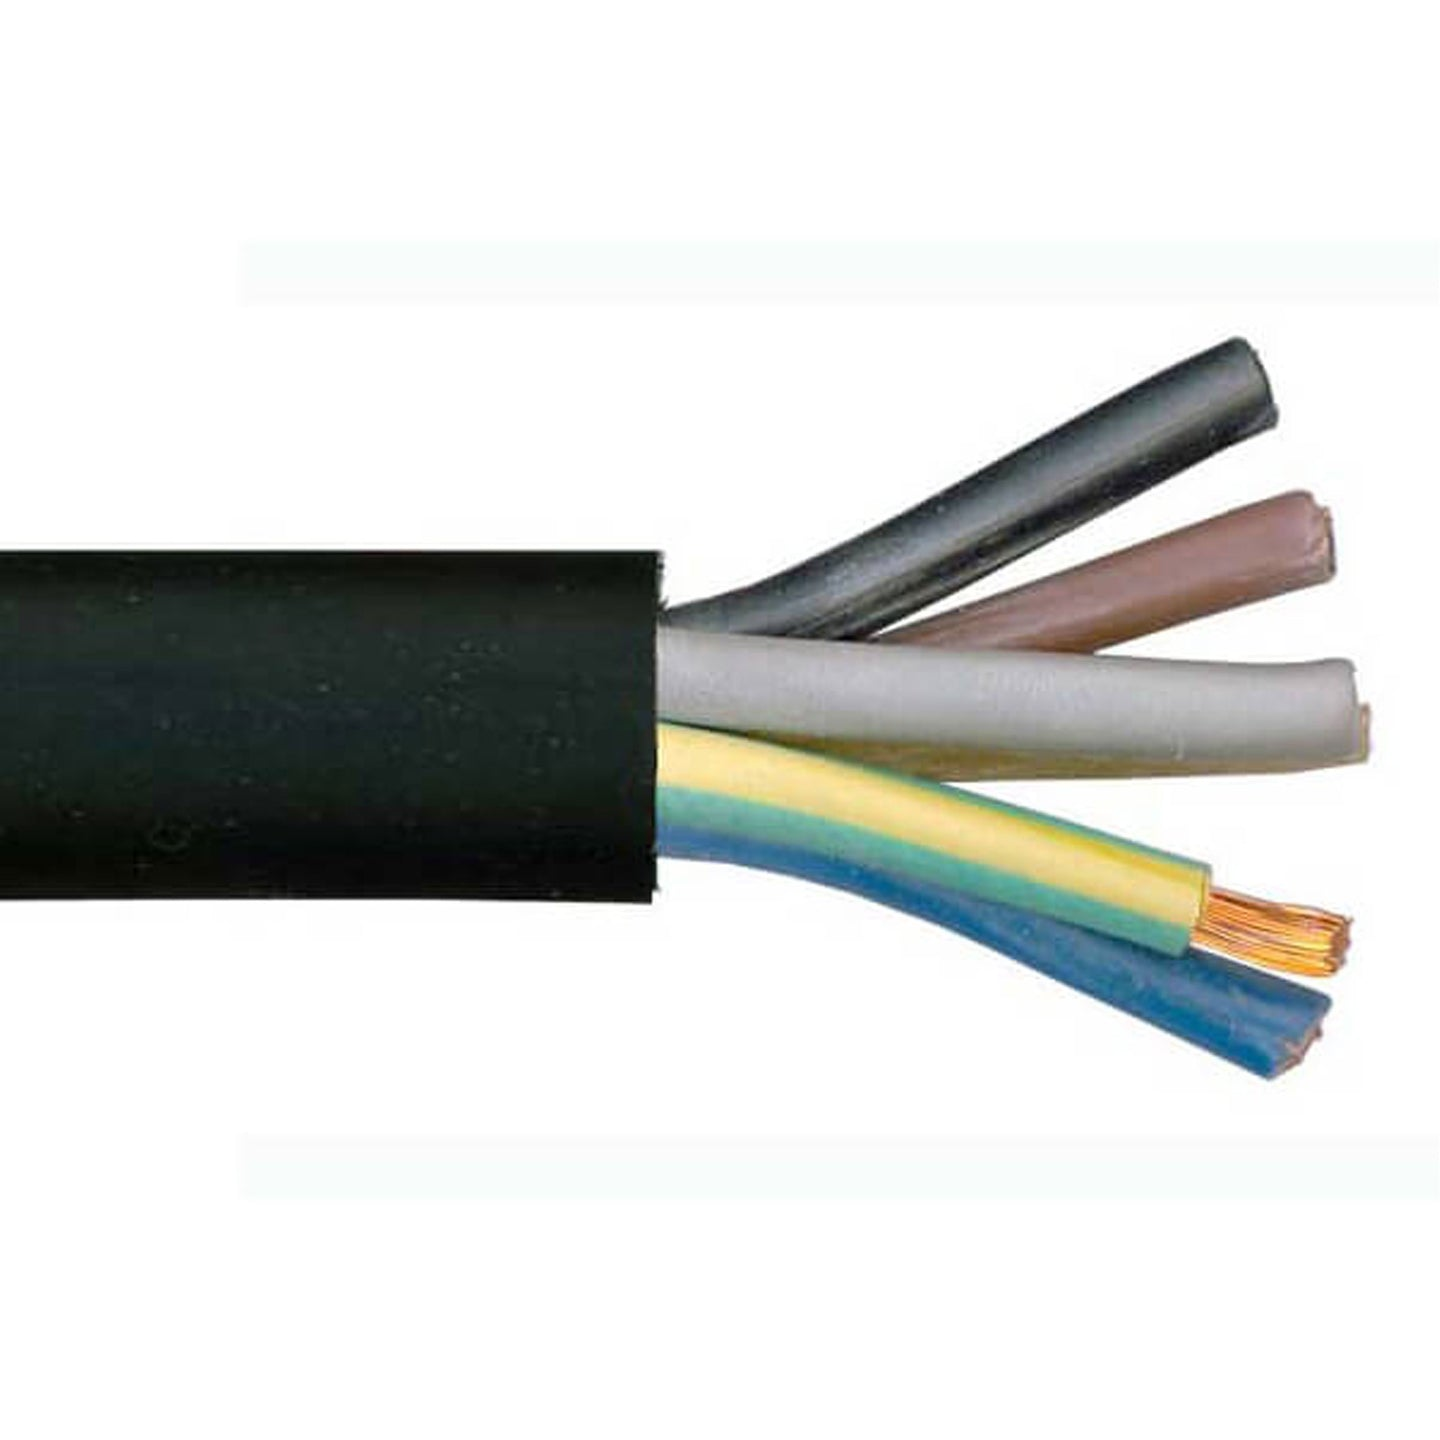 H07RN-F 7 Core Rubber Cable - Black Cut to Size Per Metre 7 Core 2.5mm2 Cable Finnmark Sauna